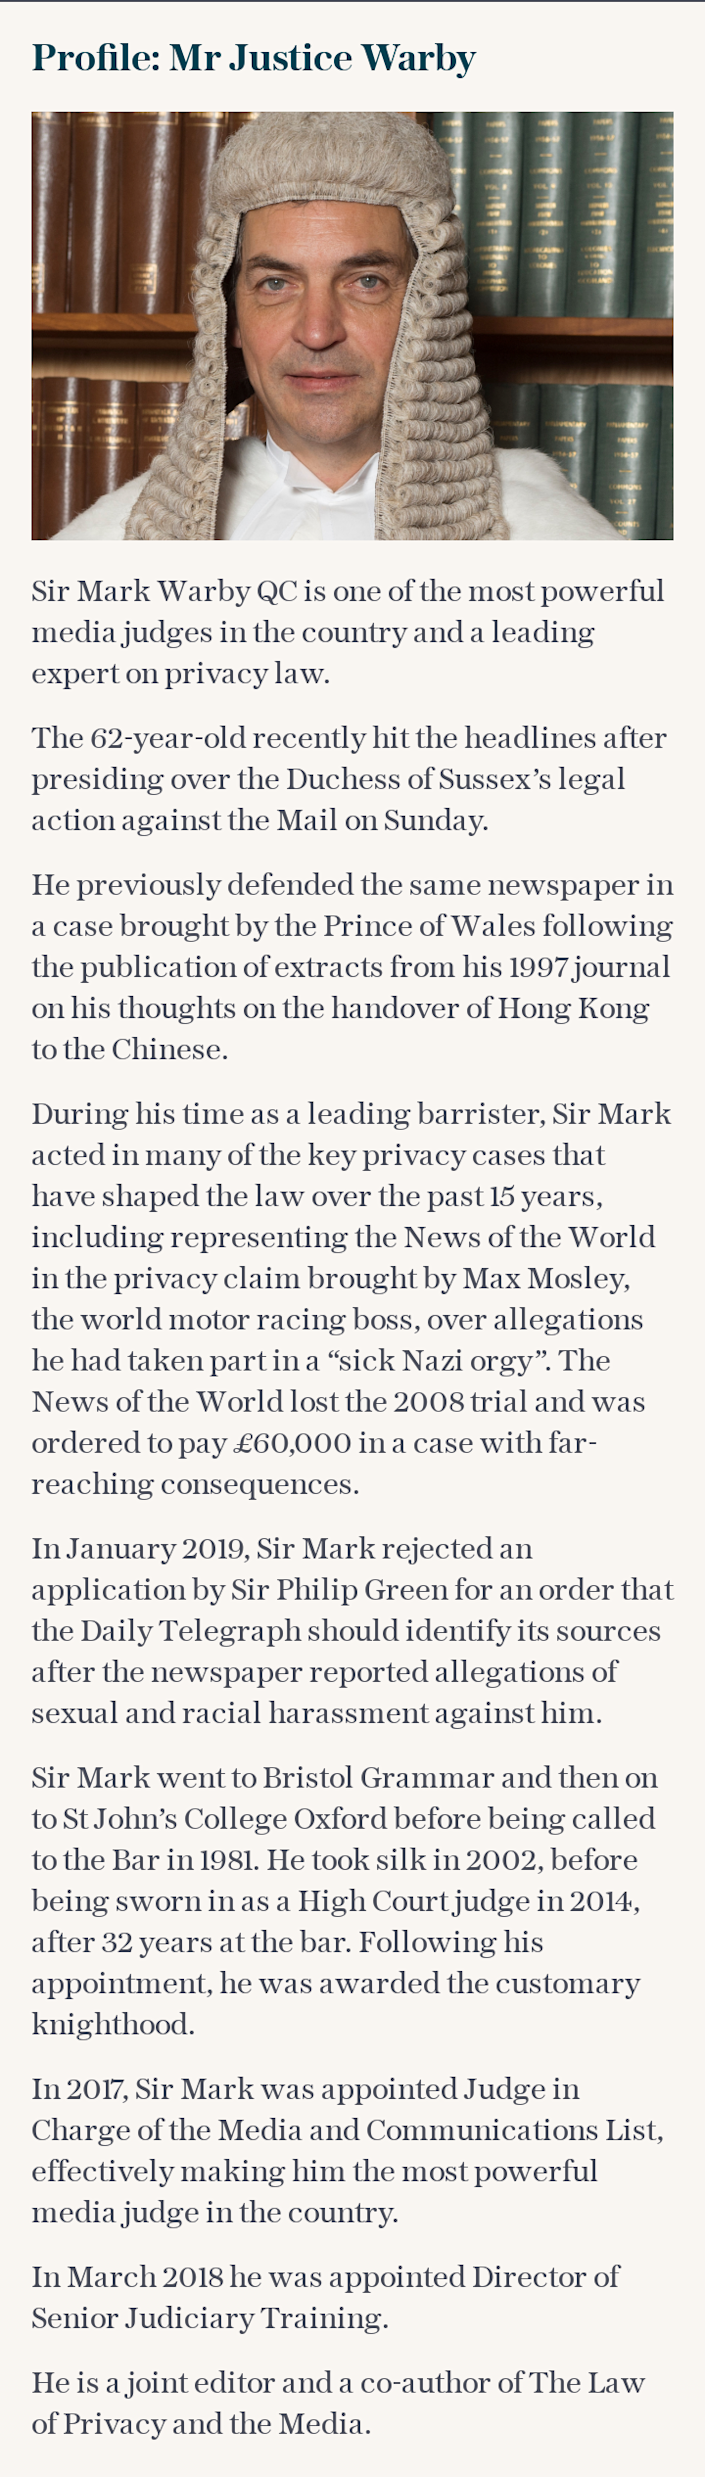 Profile: Mr Justice Warby